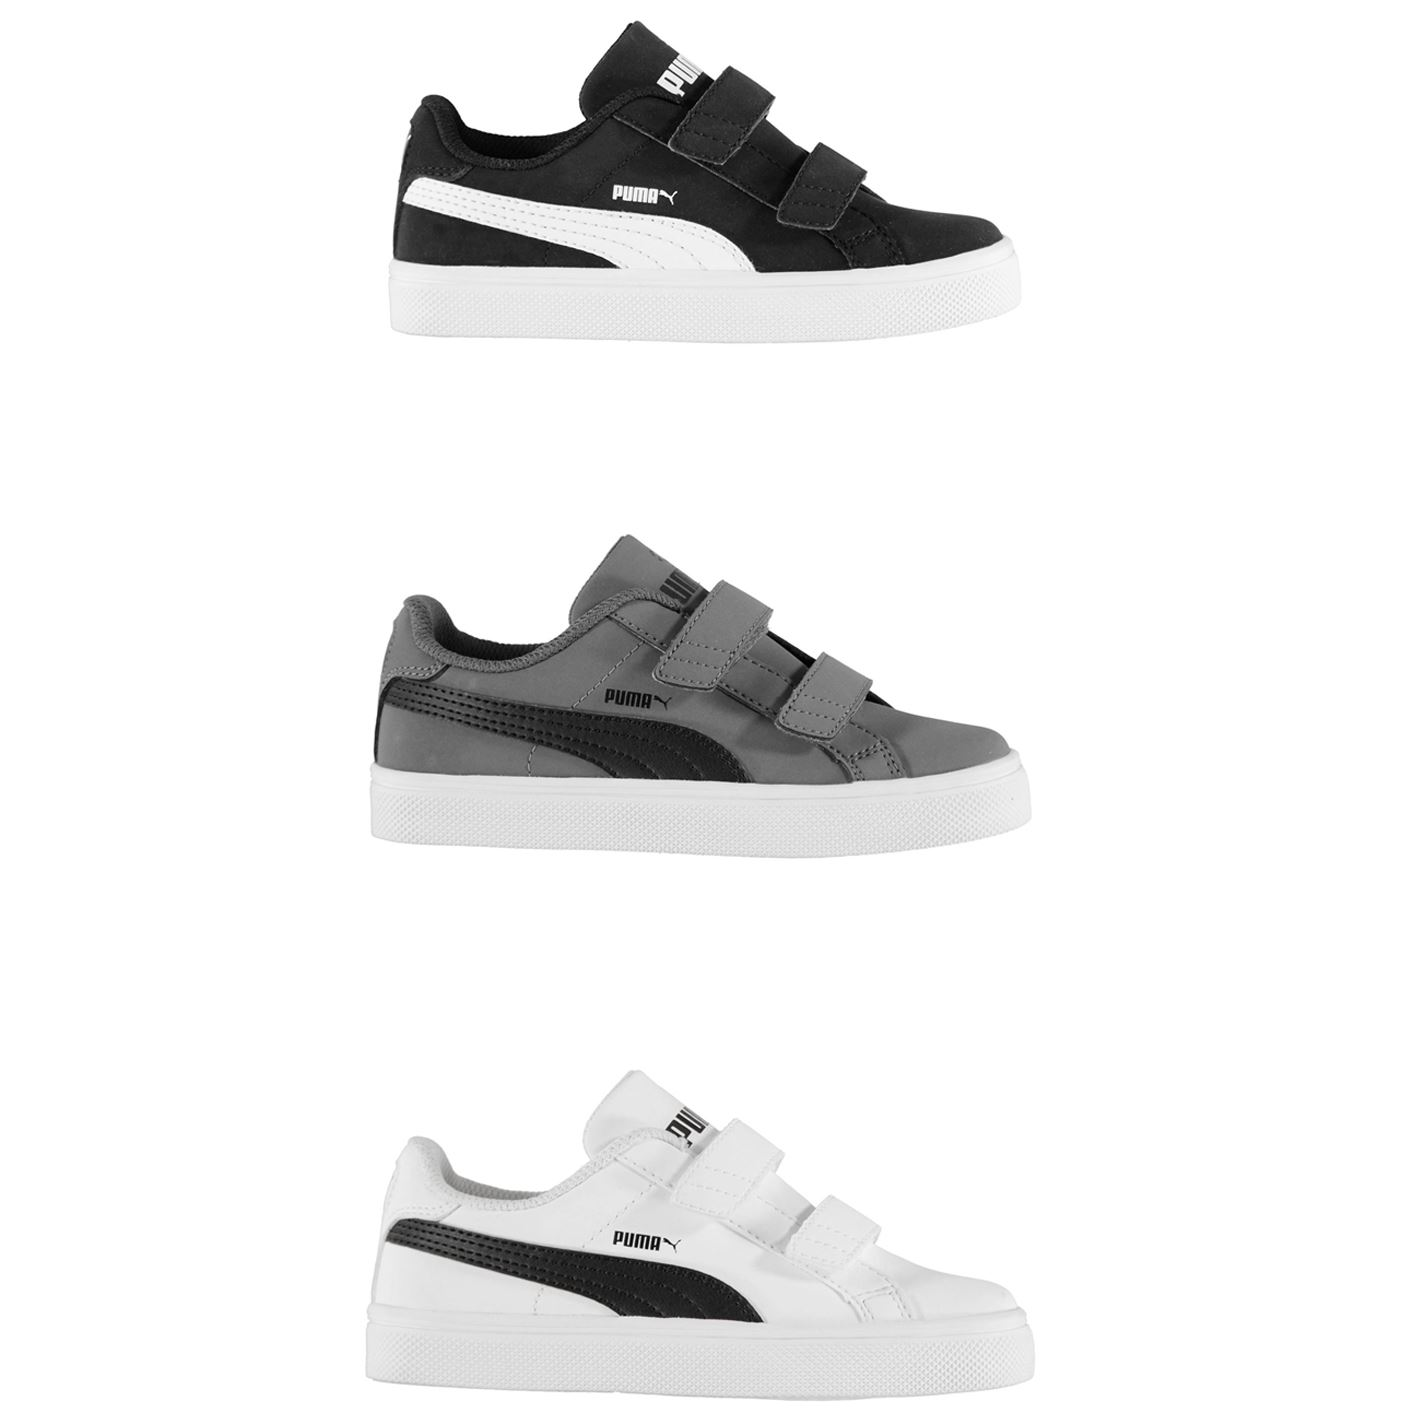 Details about Puma Smash Vulc Trainers Childs Boys Shoes Sneakers Kids Footwear